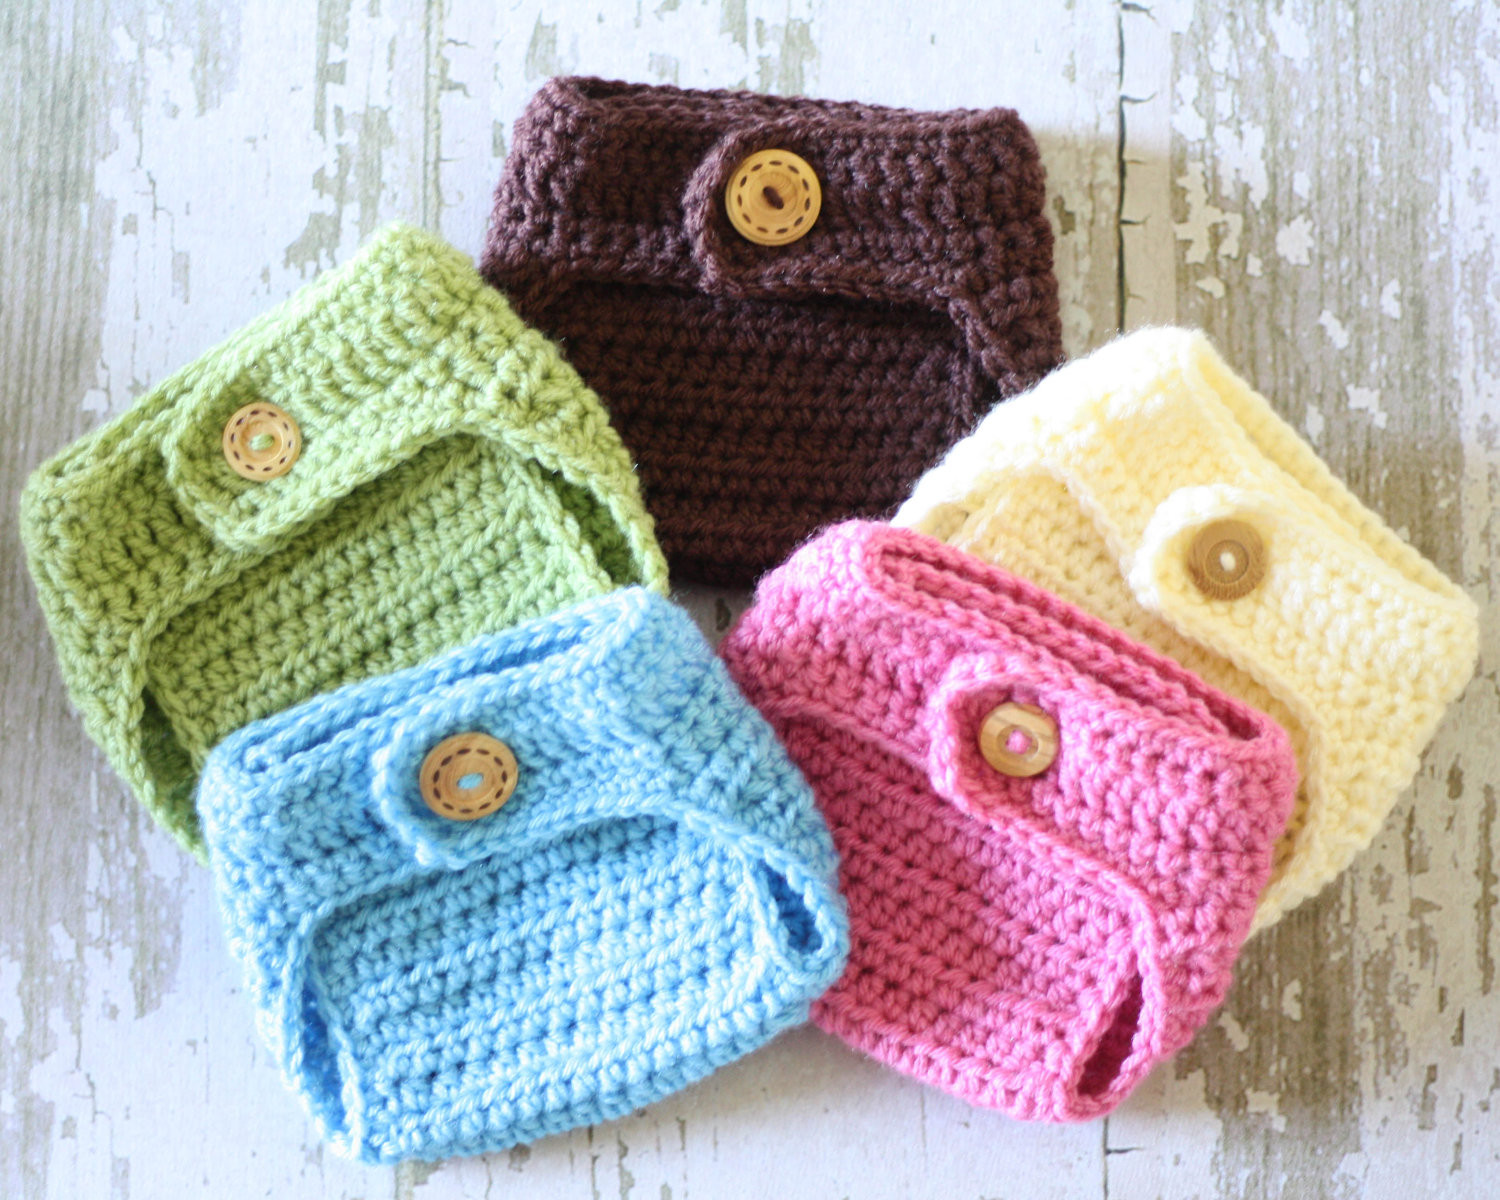 Crochet Baby Diaper Cover and Hat New My Crochet Part 284 Of Perfect 50 Photos Crochet Baby Diaper Cover and Hat